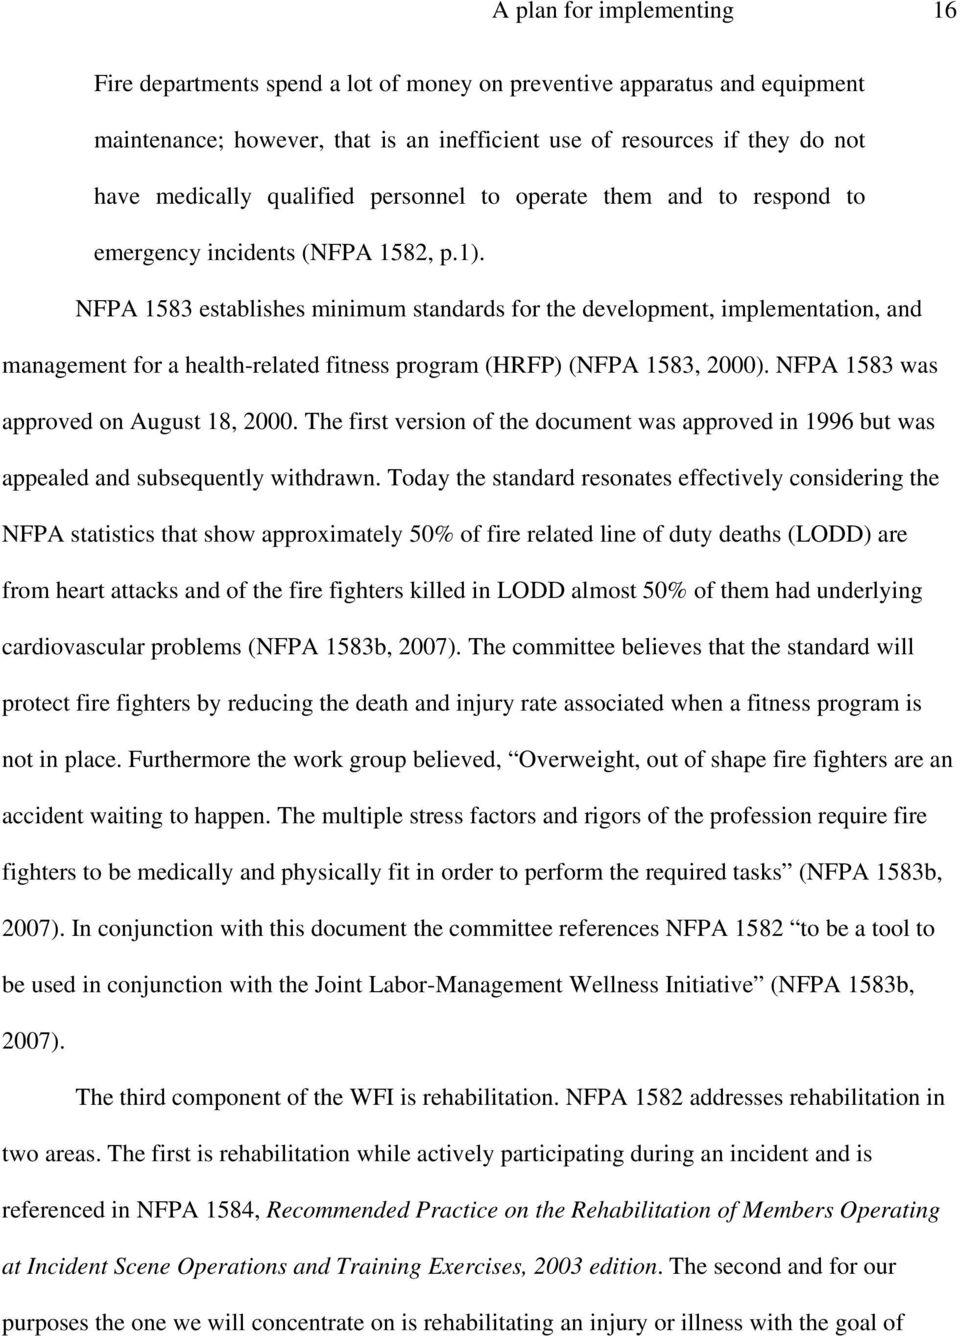 NFPA 1583 establishes minimum standards for the development, implementation, and management for a health-related fitness program (HRFP) (NFPA 1583, 2000). NFPA 1583 was approved on August 18, 2000.